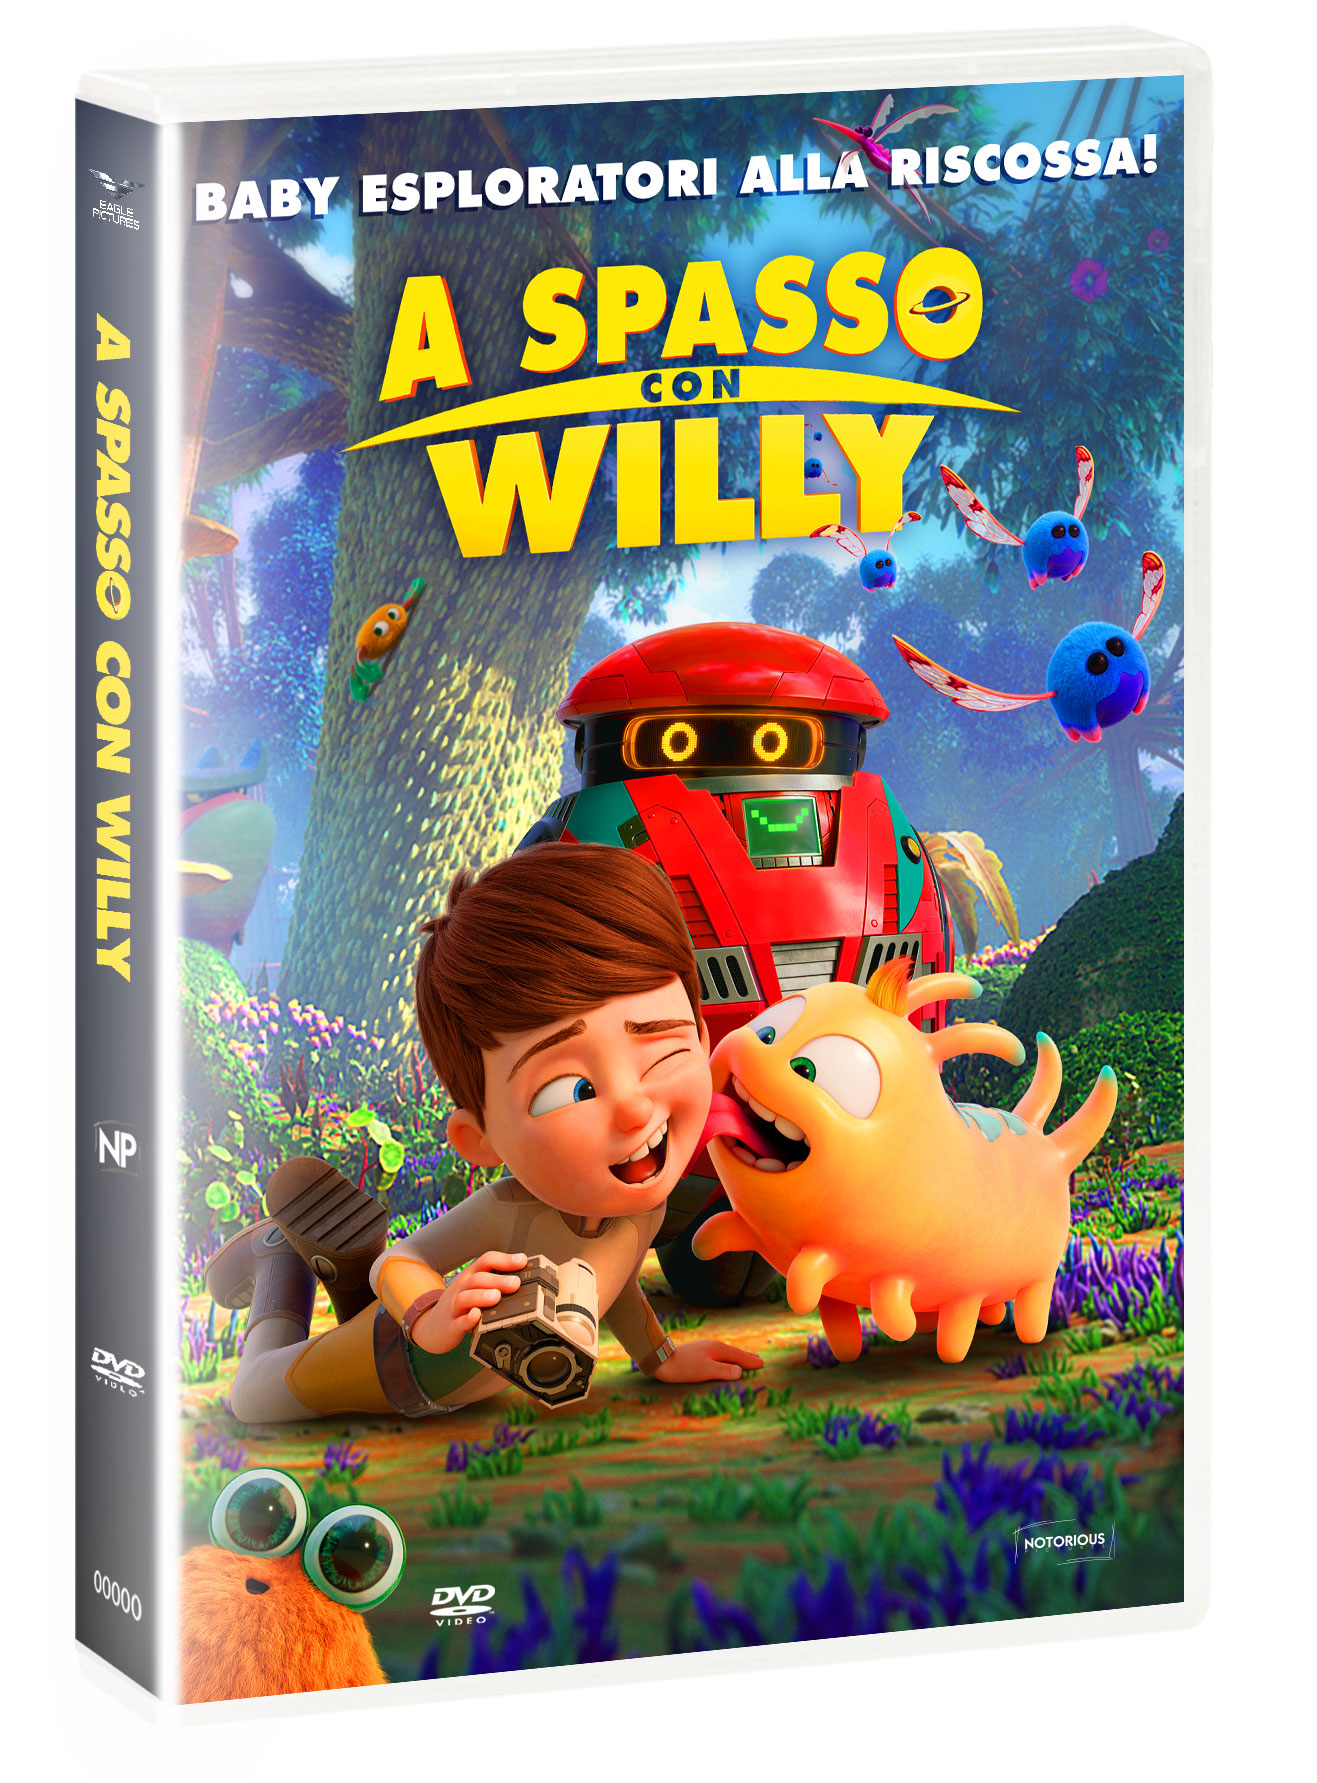 A SPASSO CON WILLY (DVD)